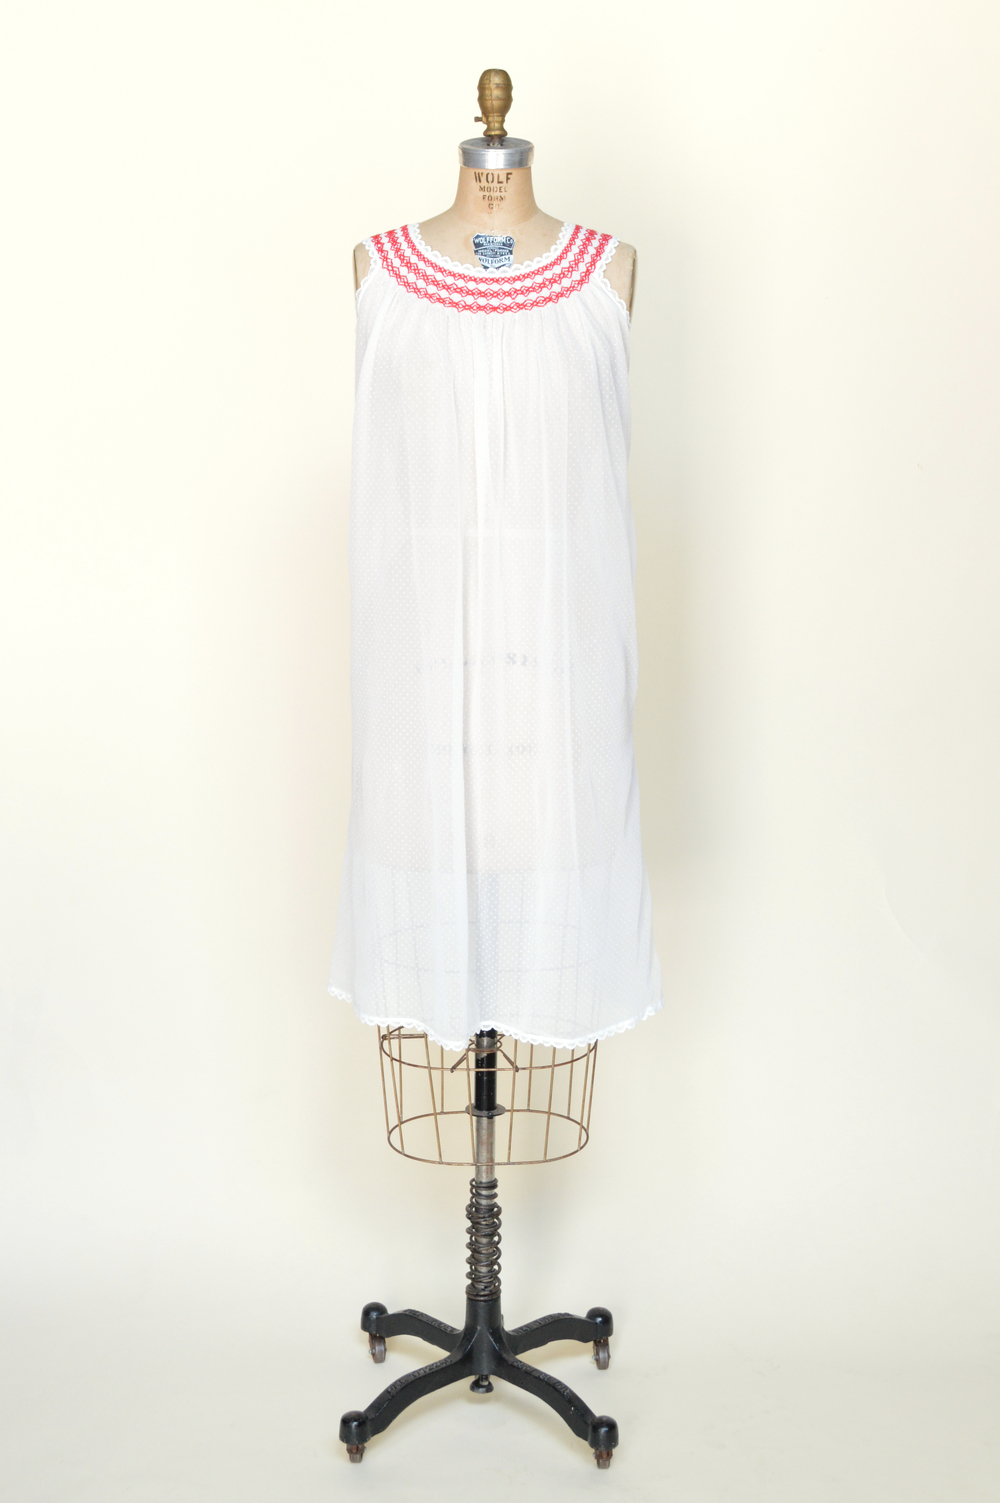 Vintage 1960s nightgown from Dalena Vintage